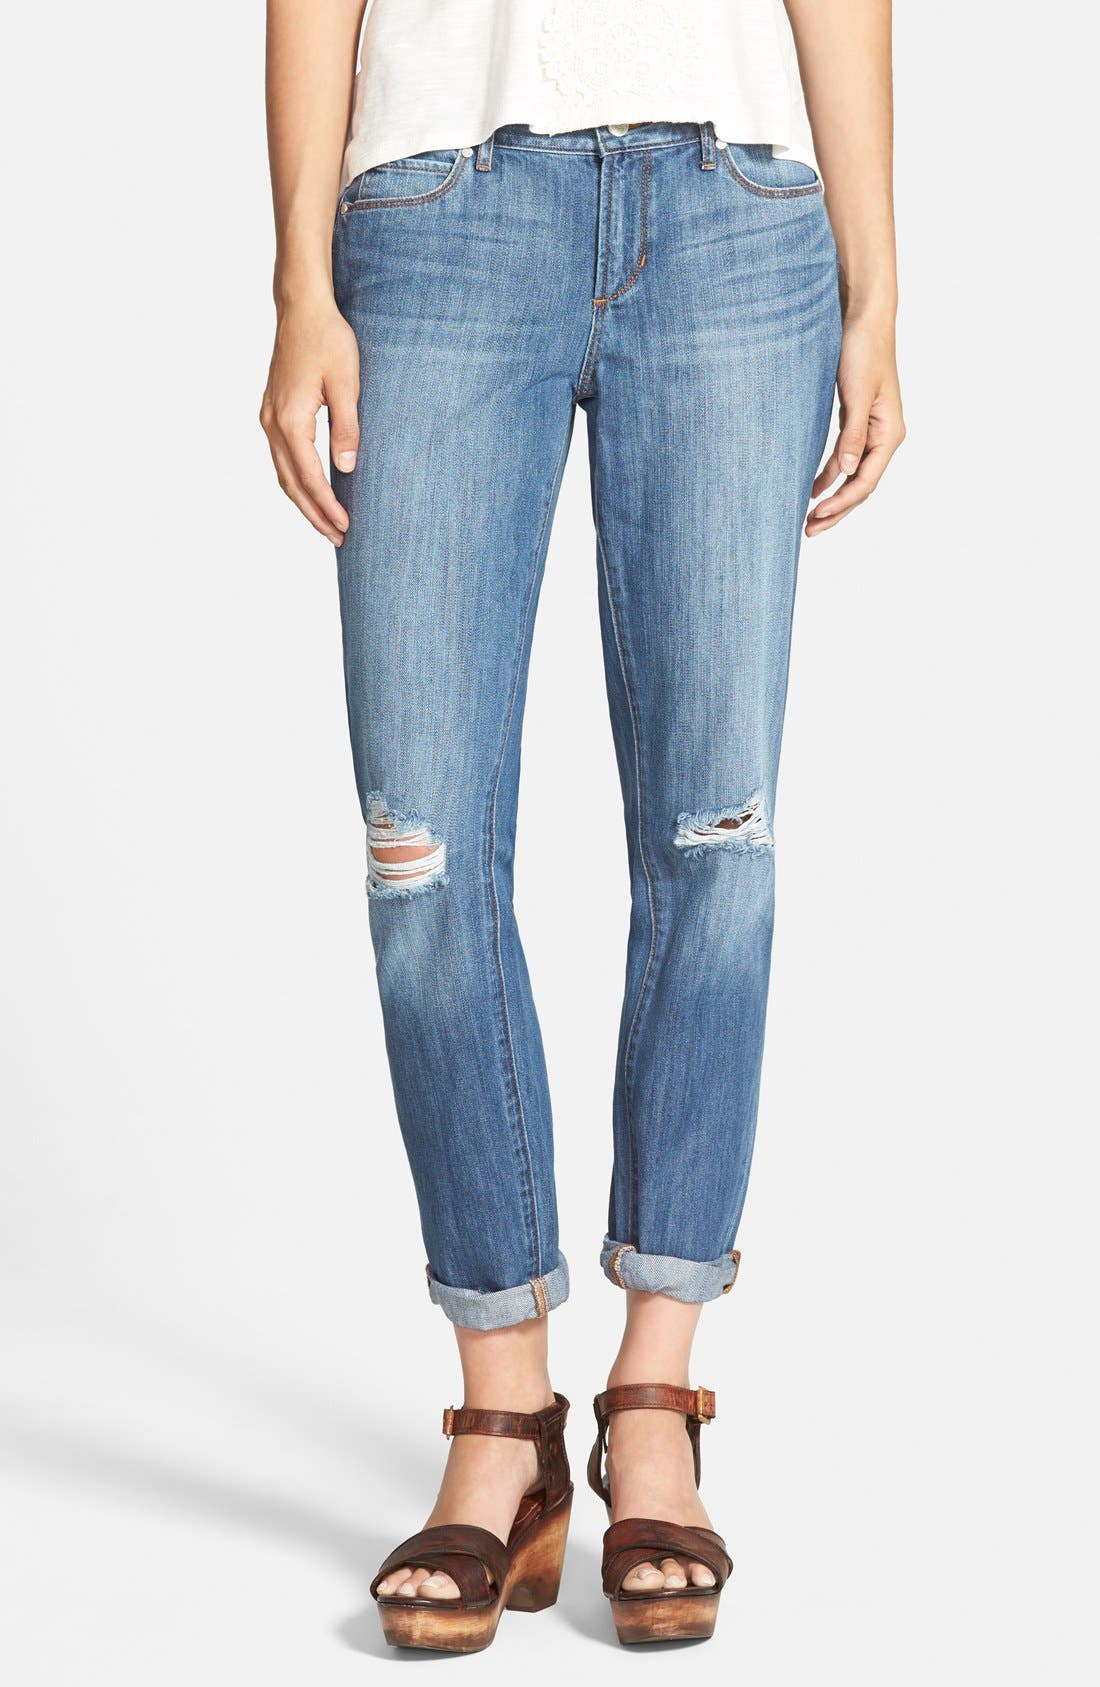 Alternate Image 1 Selected - Articles of Society 'Cindy' Boyfriend Jeans (Medium Wash)